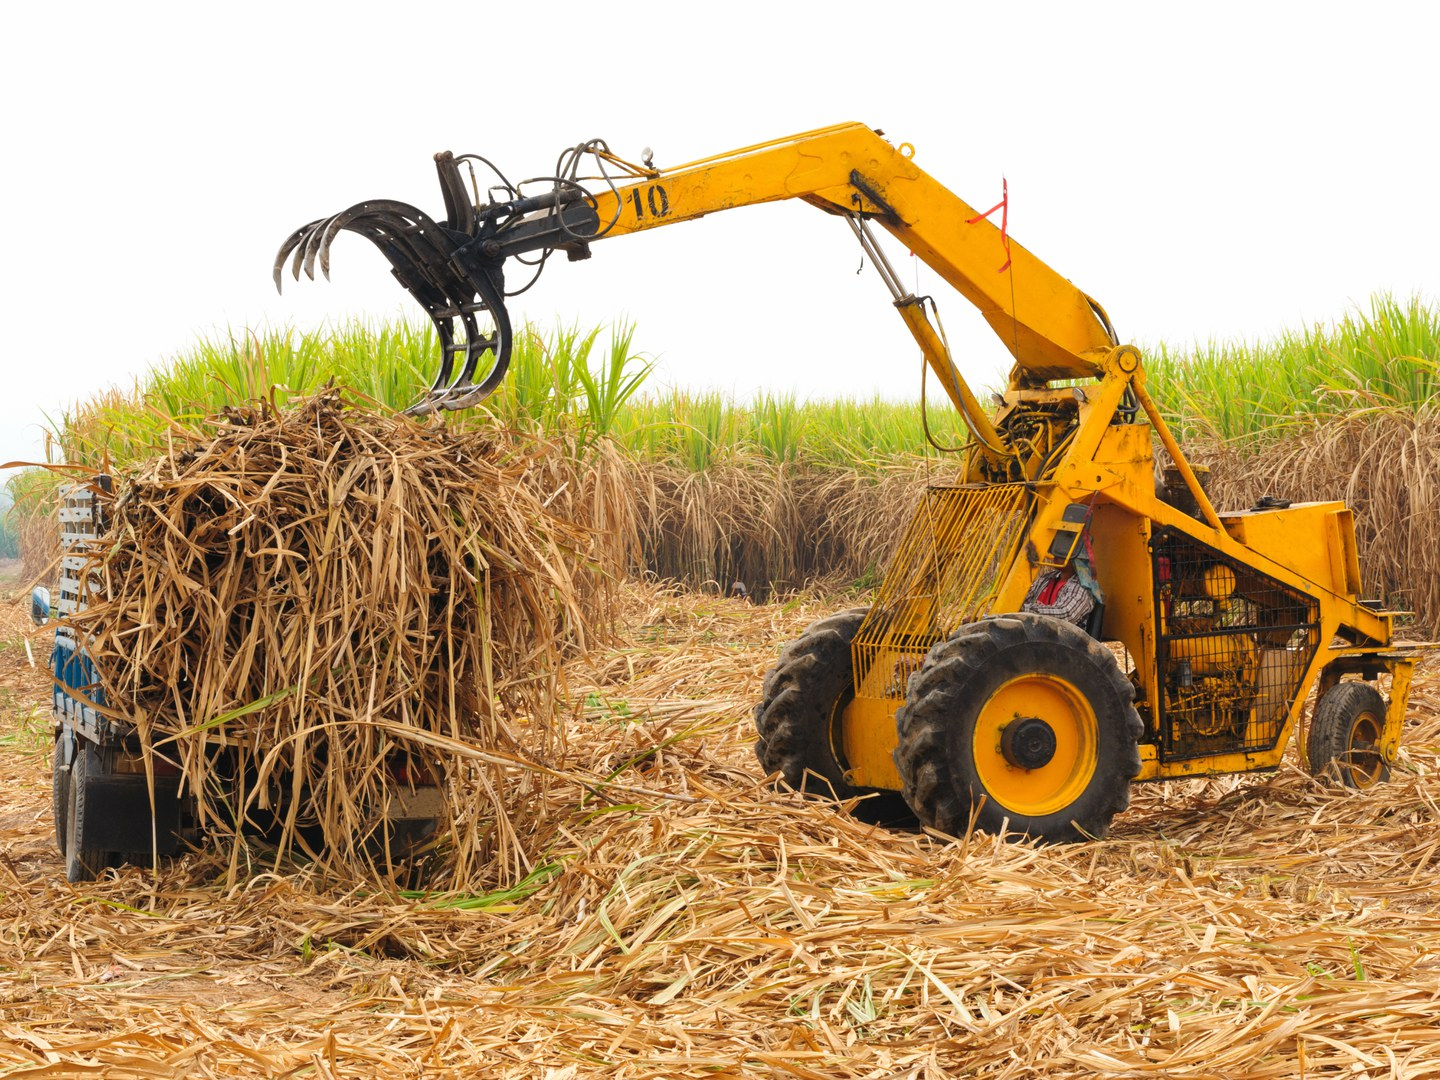 For the cultivation of sugar cane